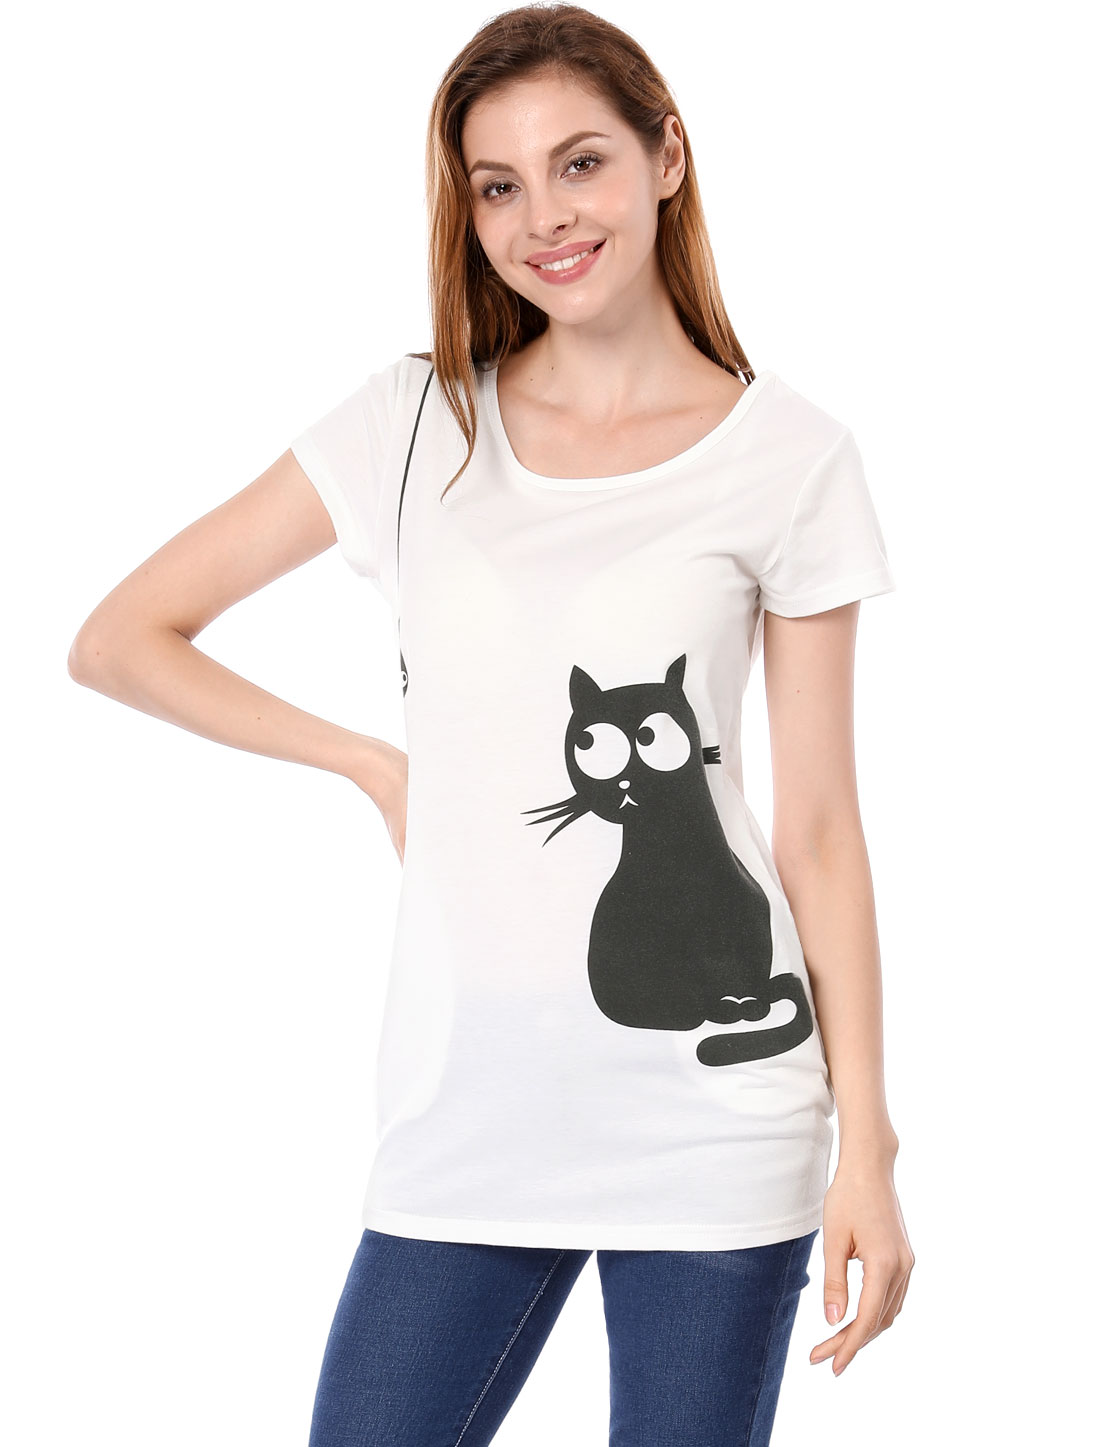 Lady Summer Wear Short Sleeve Cat Prints Loose Tunic Top White XS